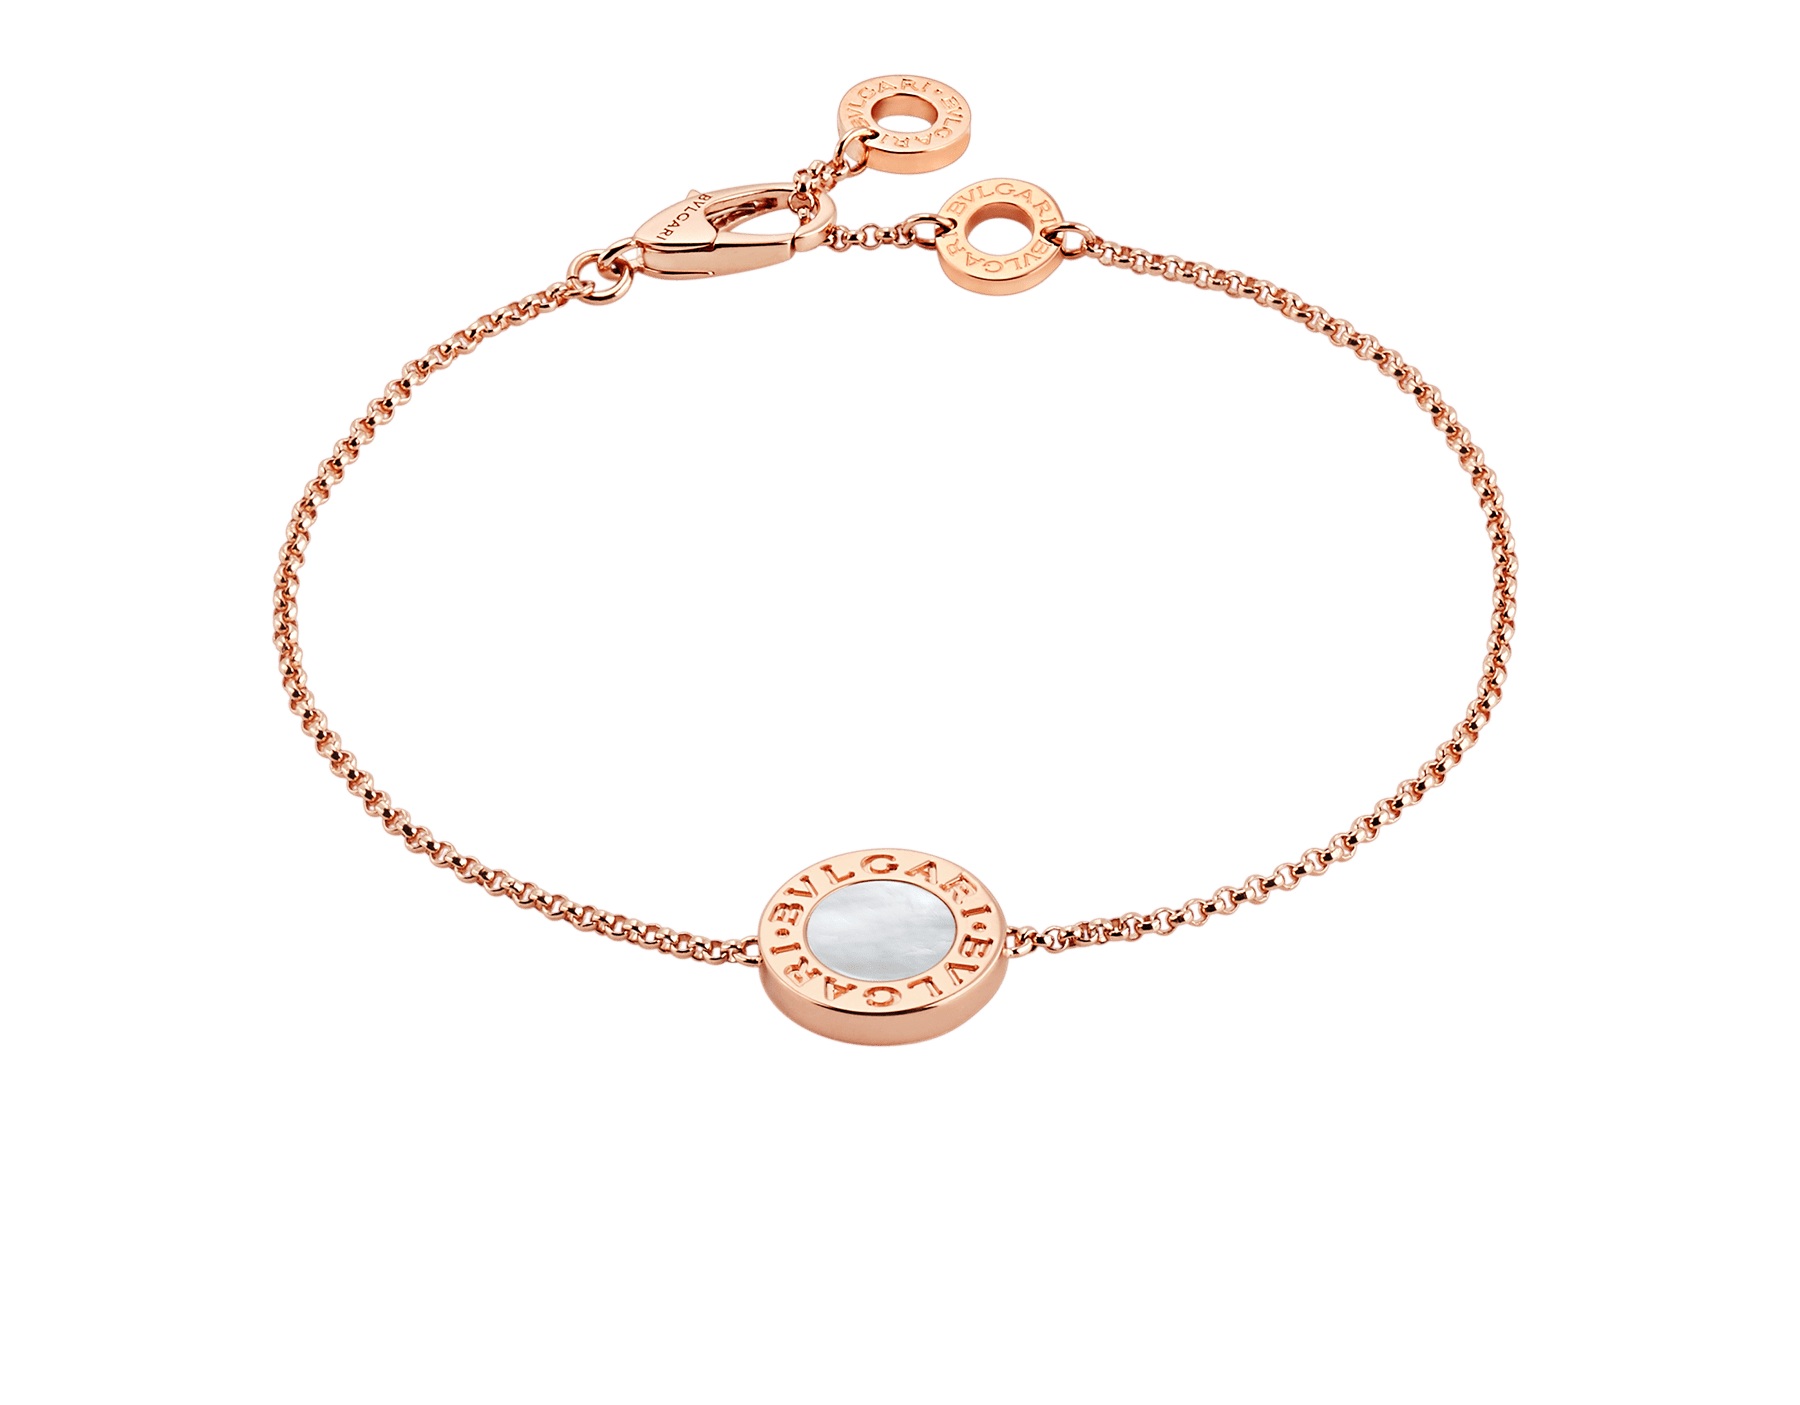 BVLGARI BVLGARI 18 kt rose gold bracelet set with mother-of-pearl elements BR857192 image 1